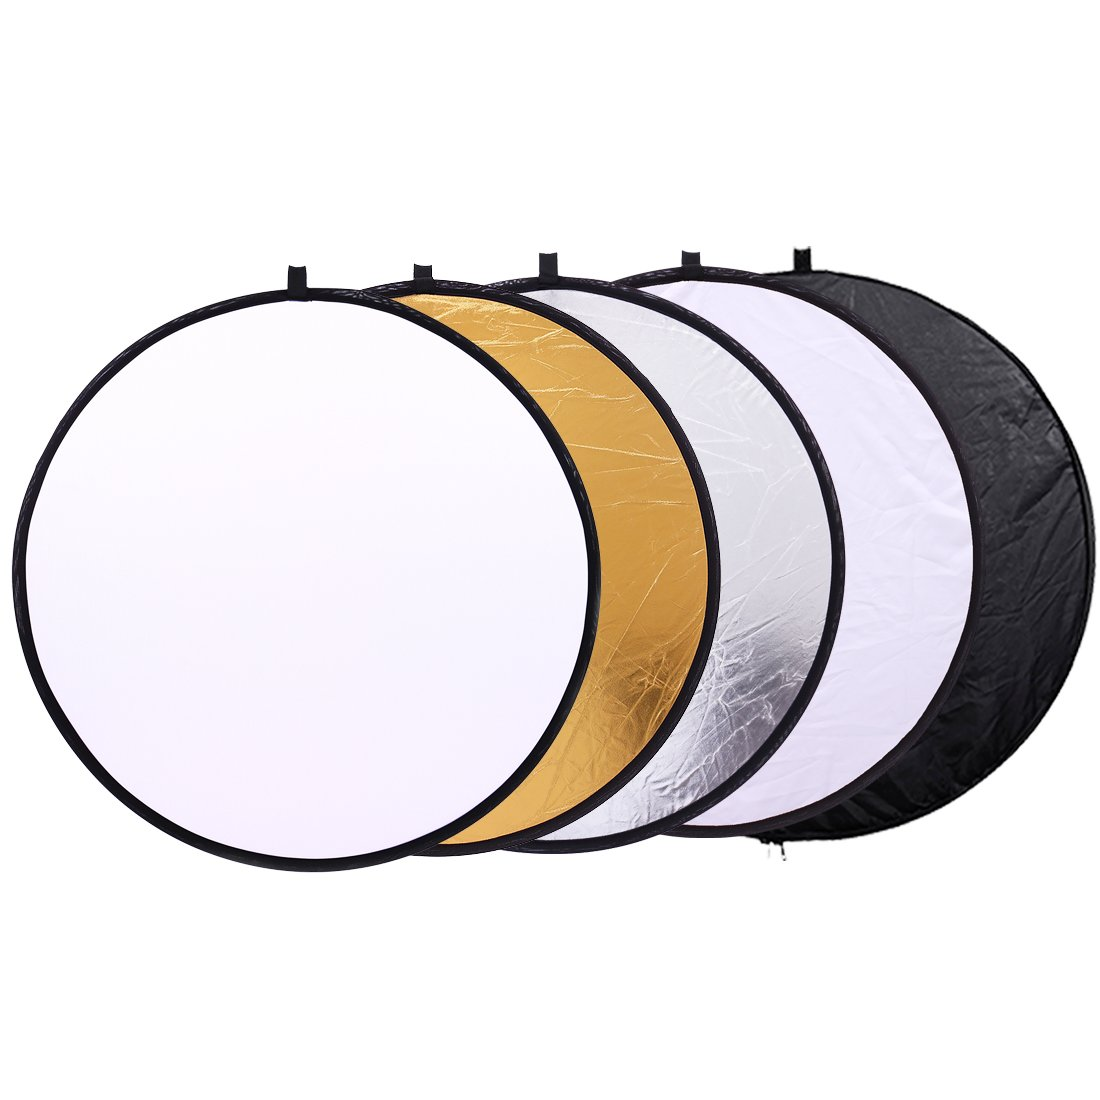 5-in-1 Photo Video Reflectors 32 inch (80cm) Collapsible Multi-Disc Light Round Photography Reflector with Bag -Translucent, Silver, Gold, White and Black Konseen 4332005127